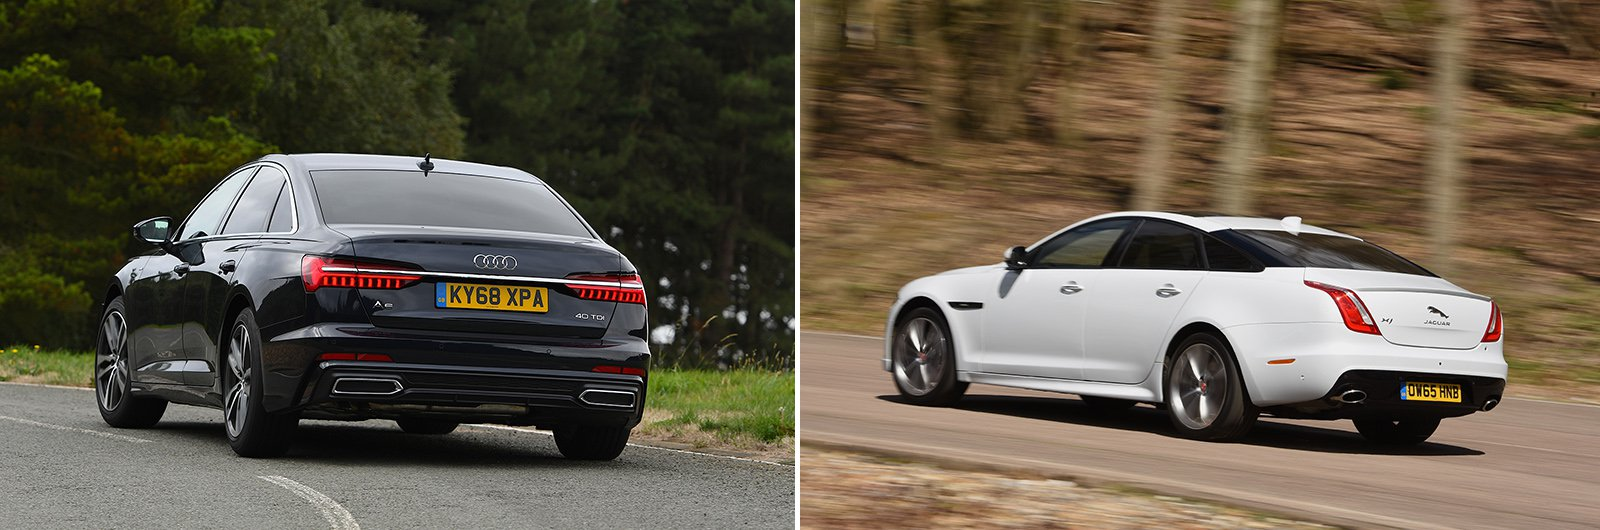 New Audi A6 vs used Jaguar XJ: which is best?